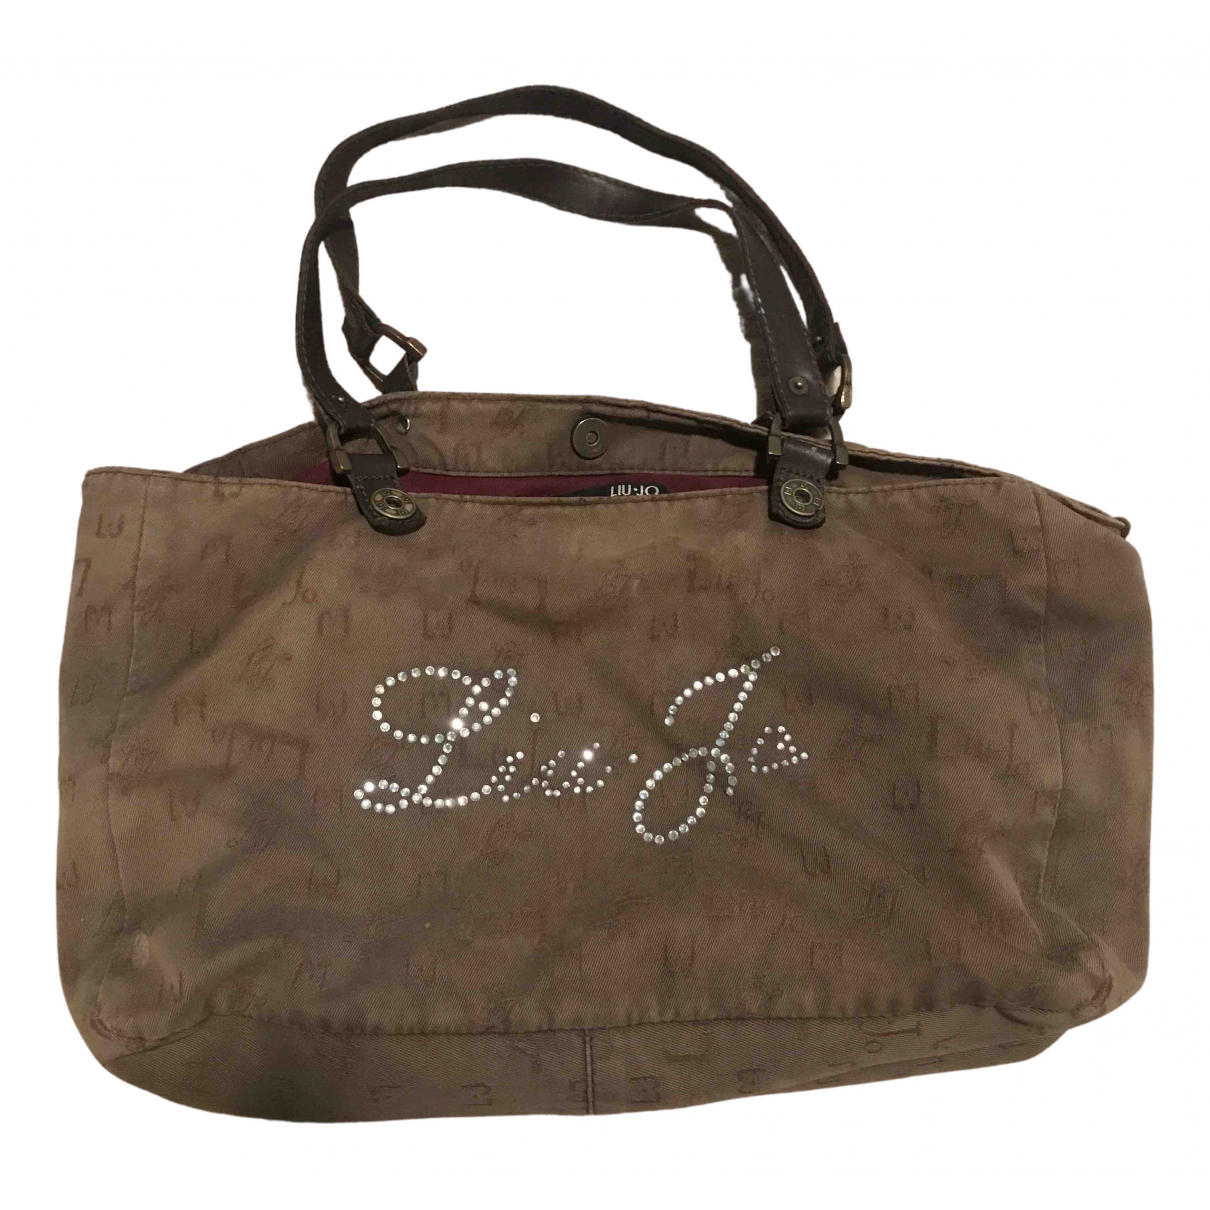 Liu.jo N Cotton handbag for Women N